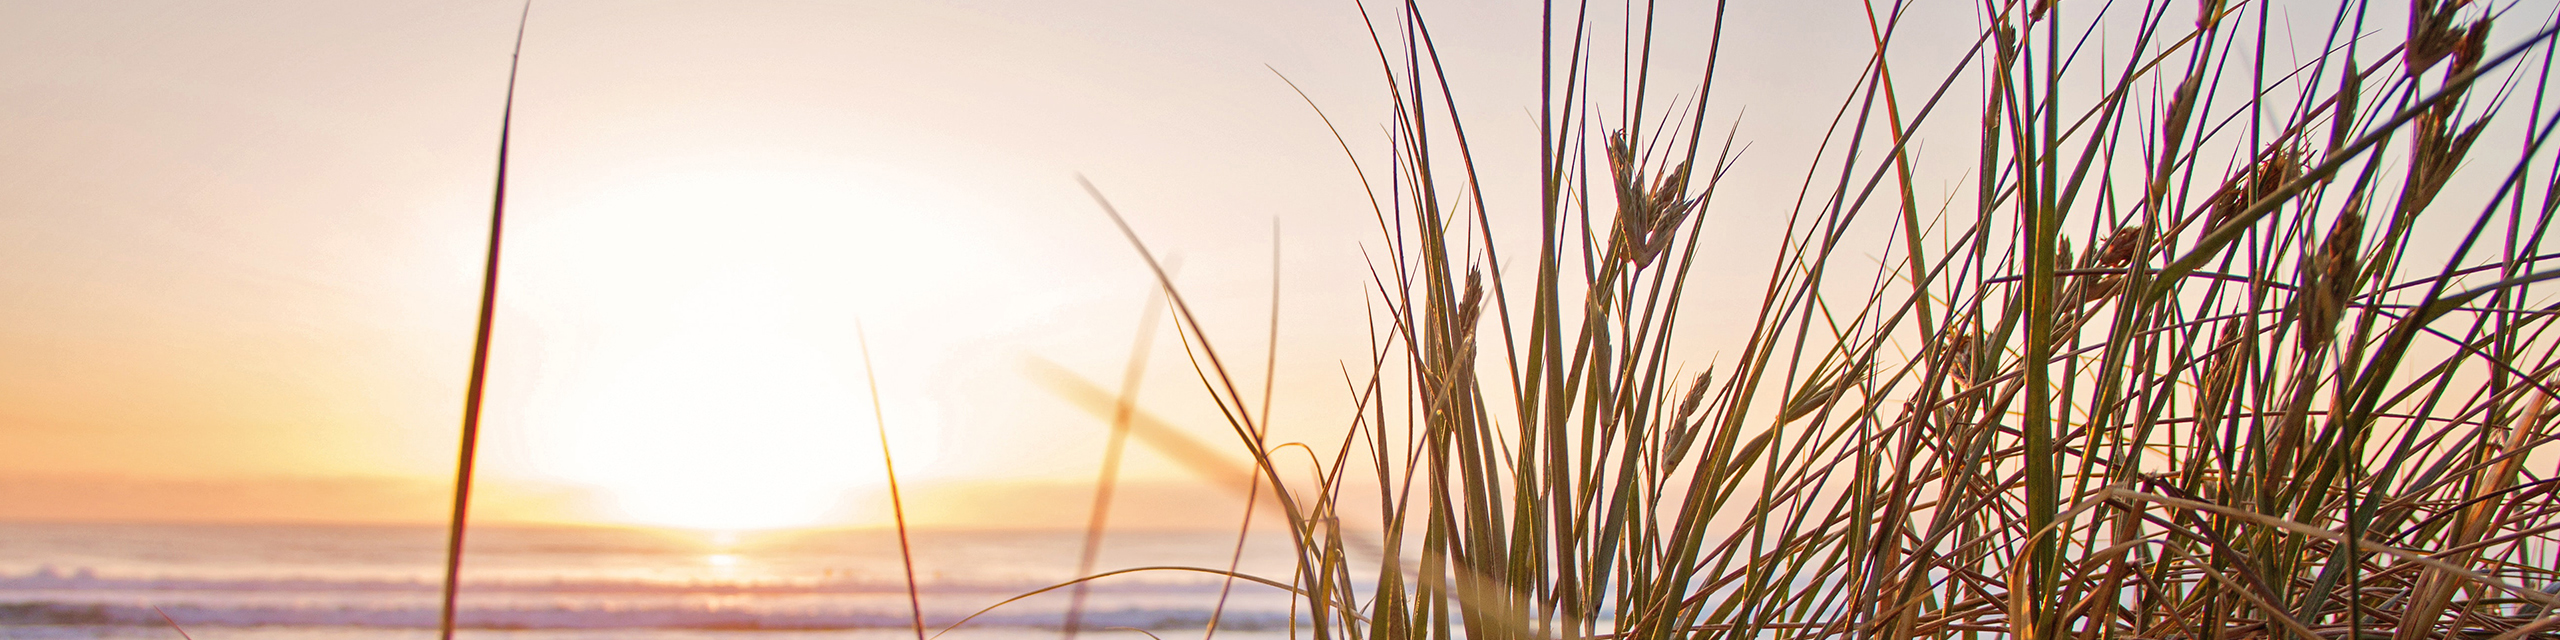 Picture of warm summer sunset over a lake with grasses in the foreground.